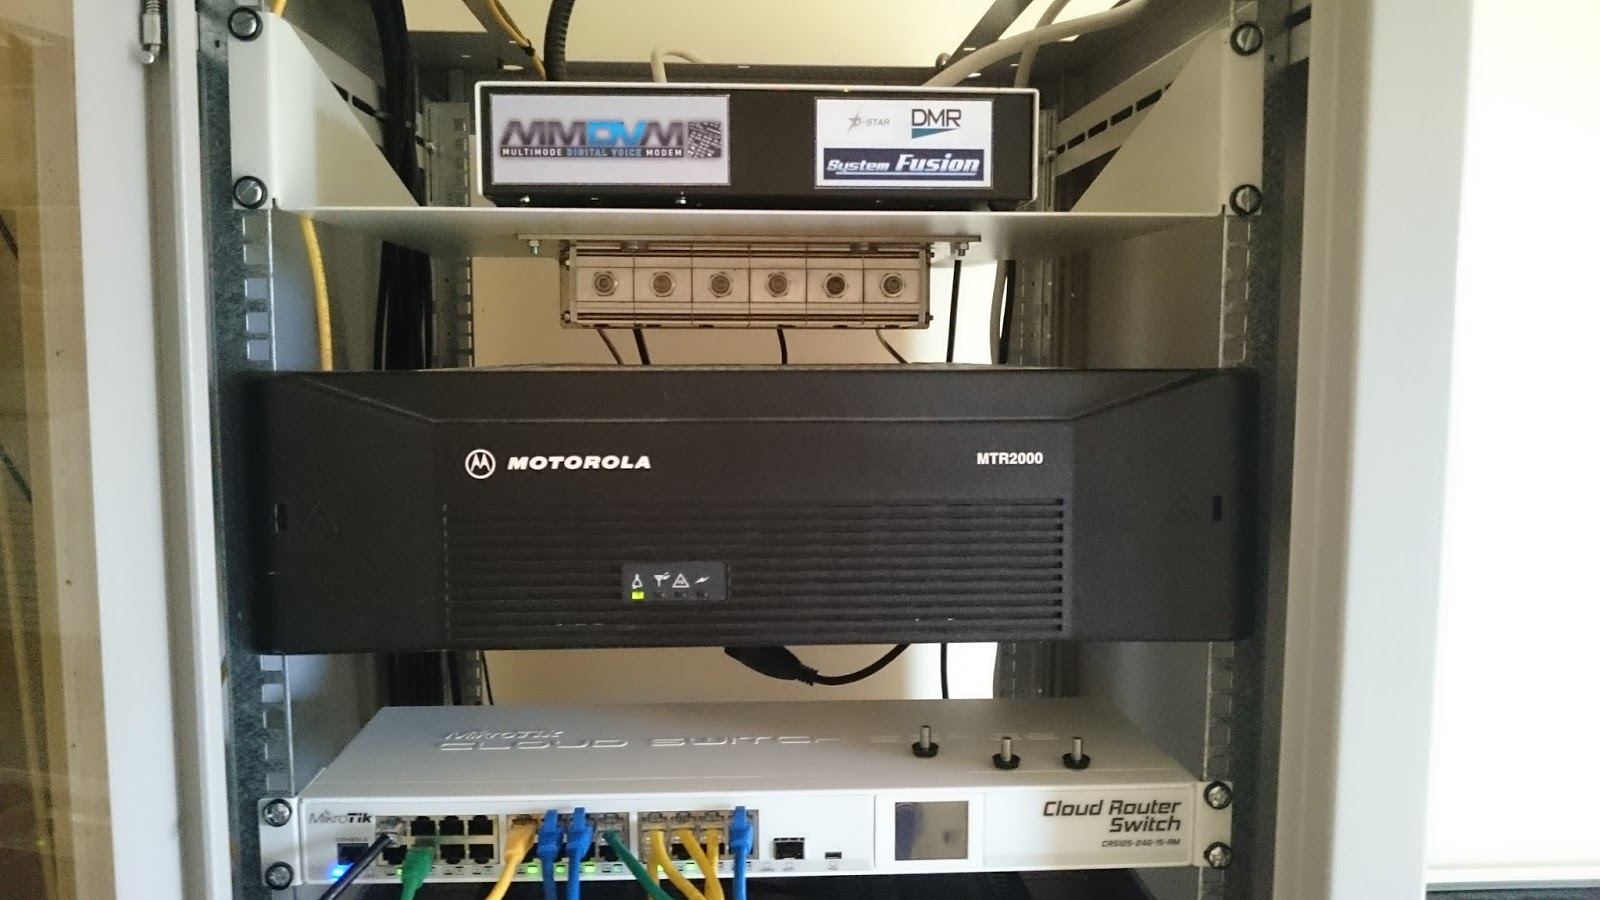 Southern Ireland Repeater Group: Digital Repeaters